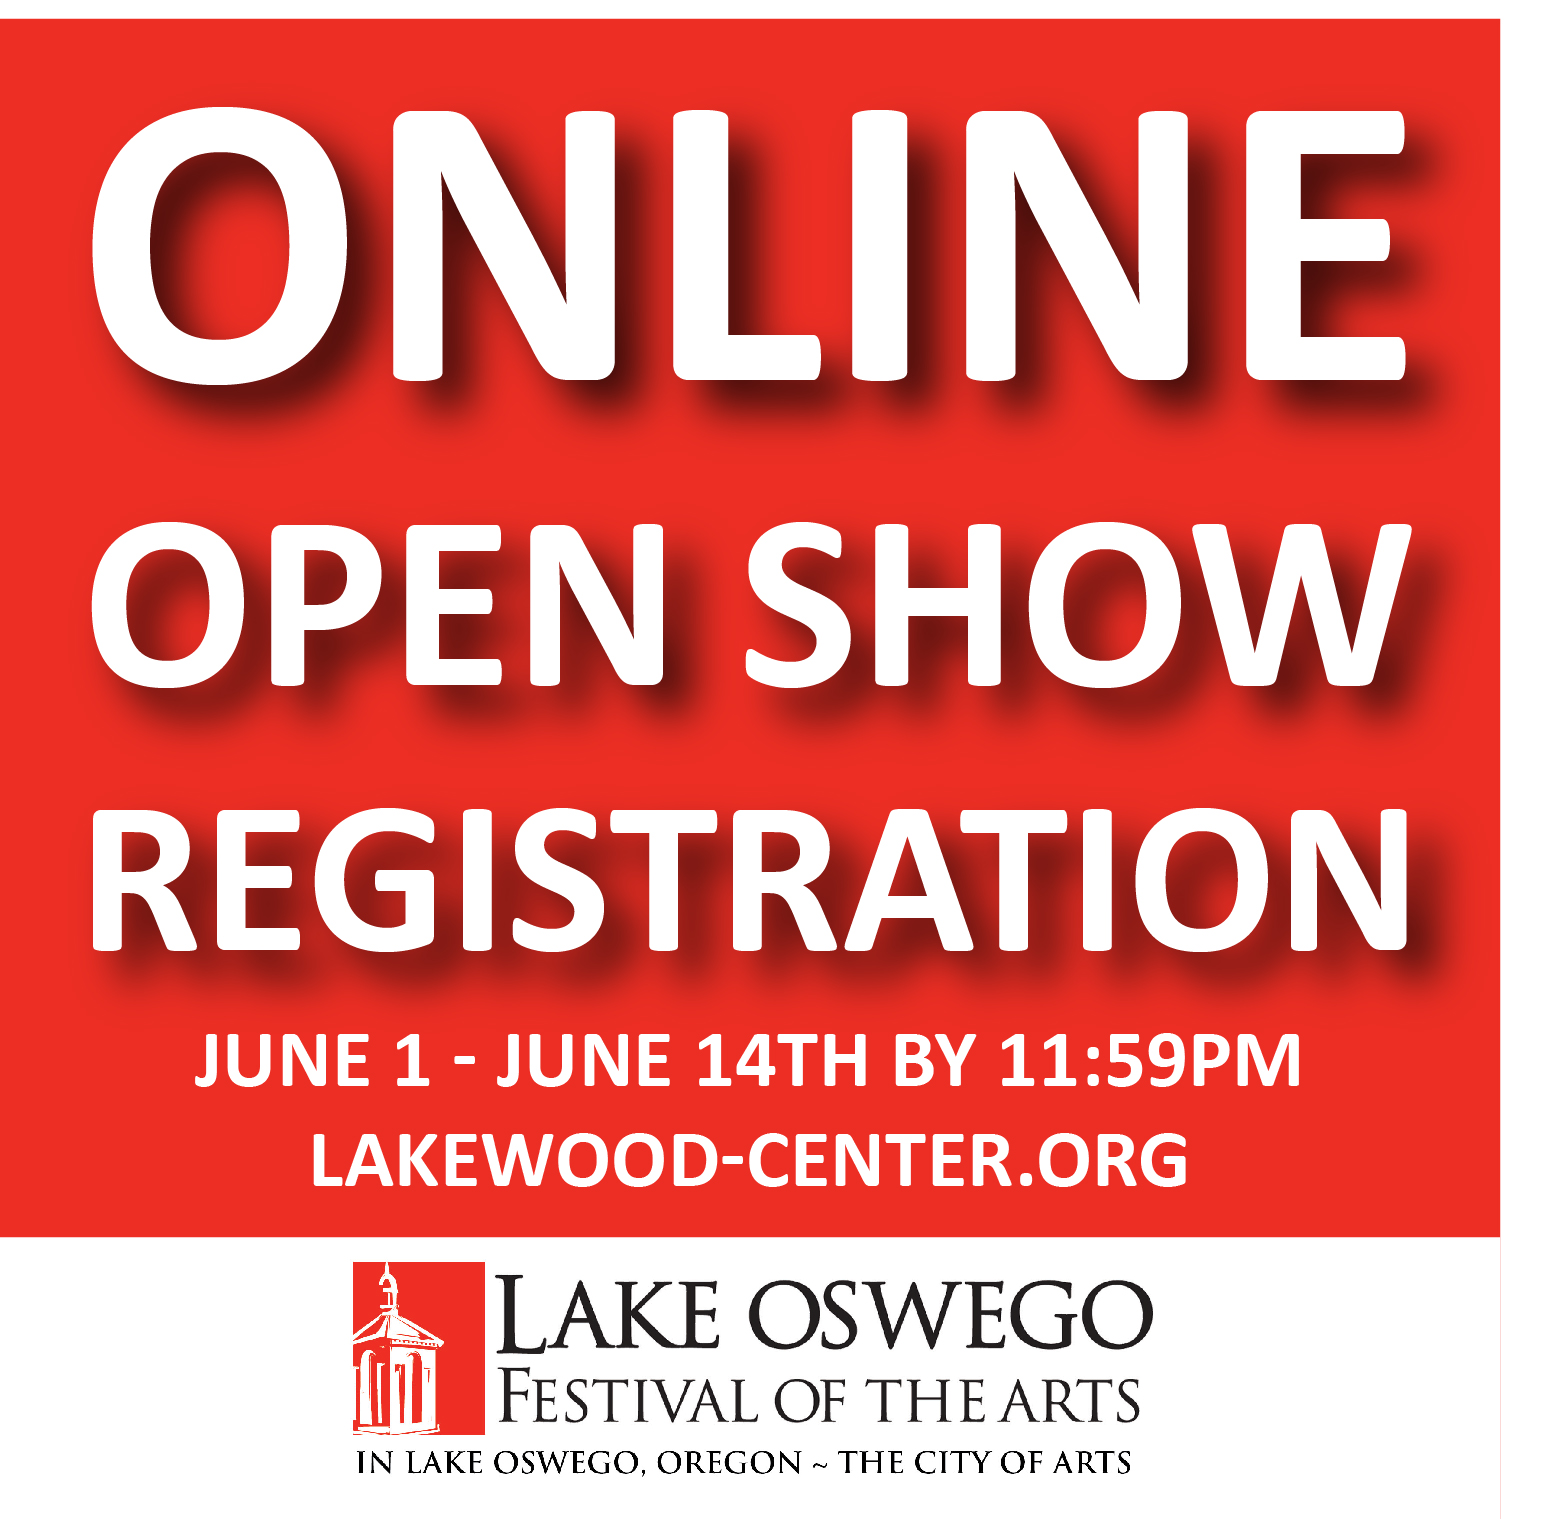 Open Show registration for the 2017 Lake Oswego Festival of the Arts